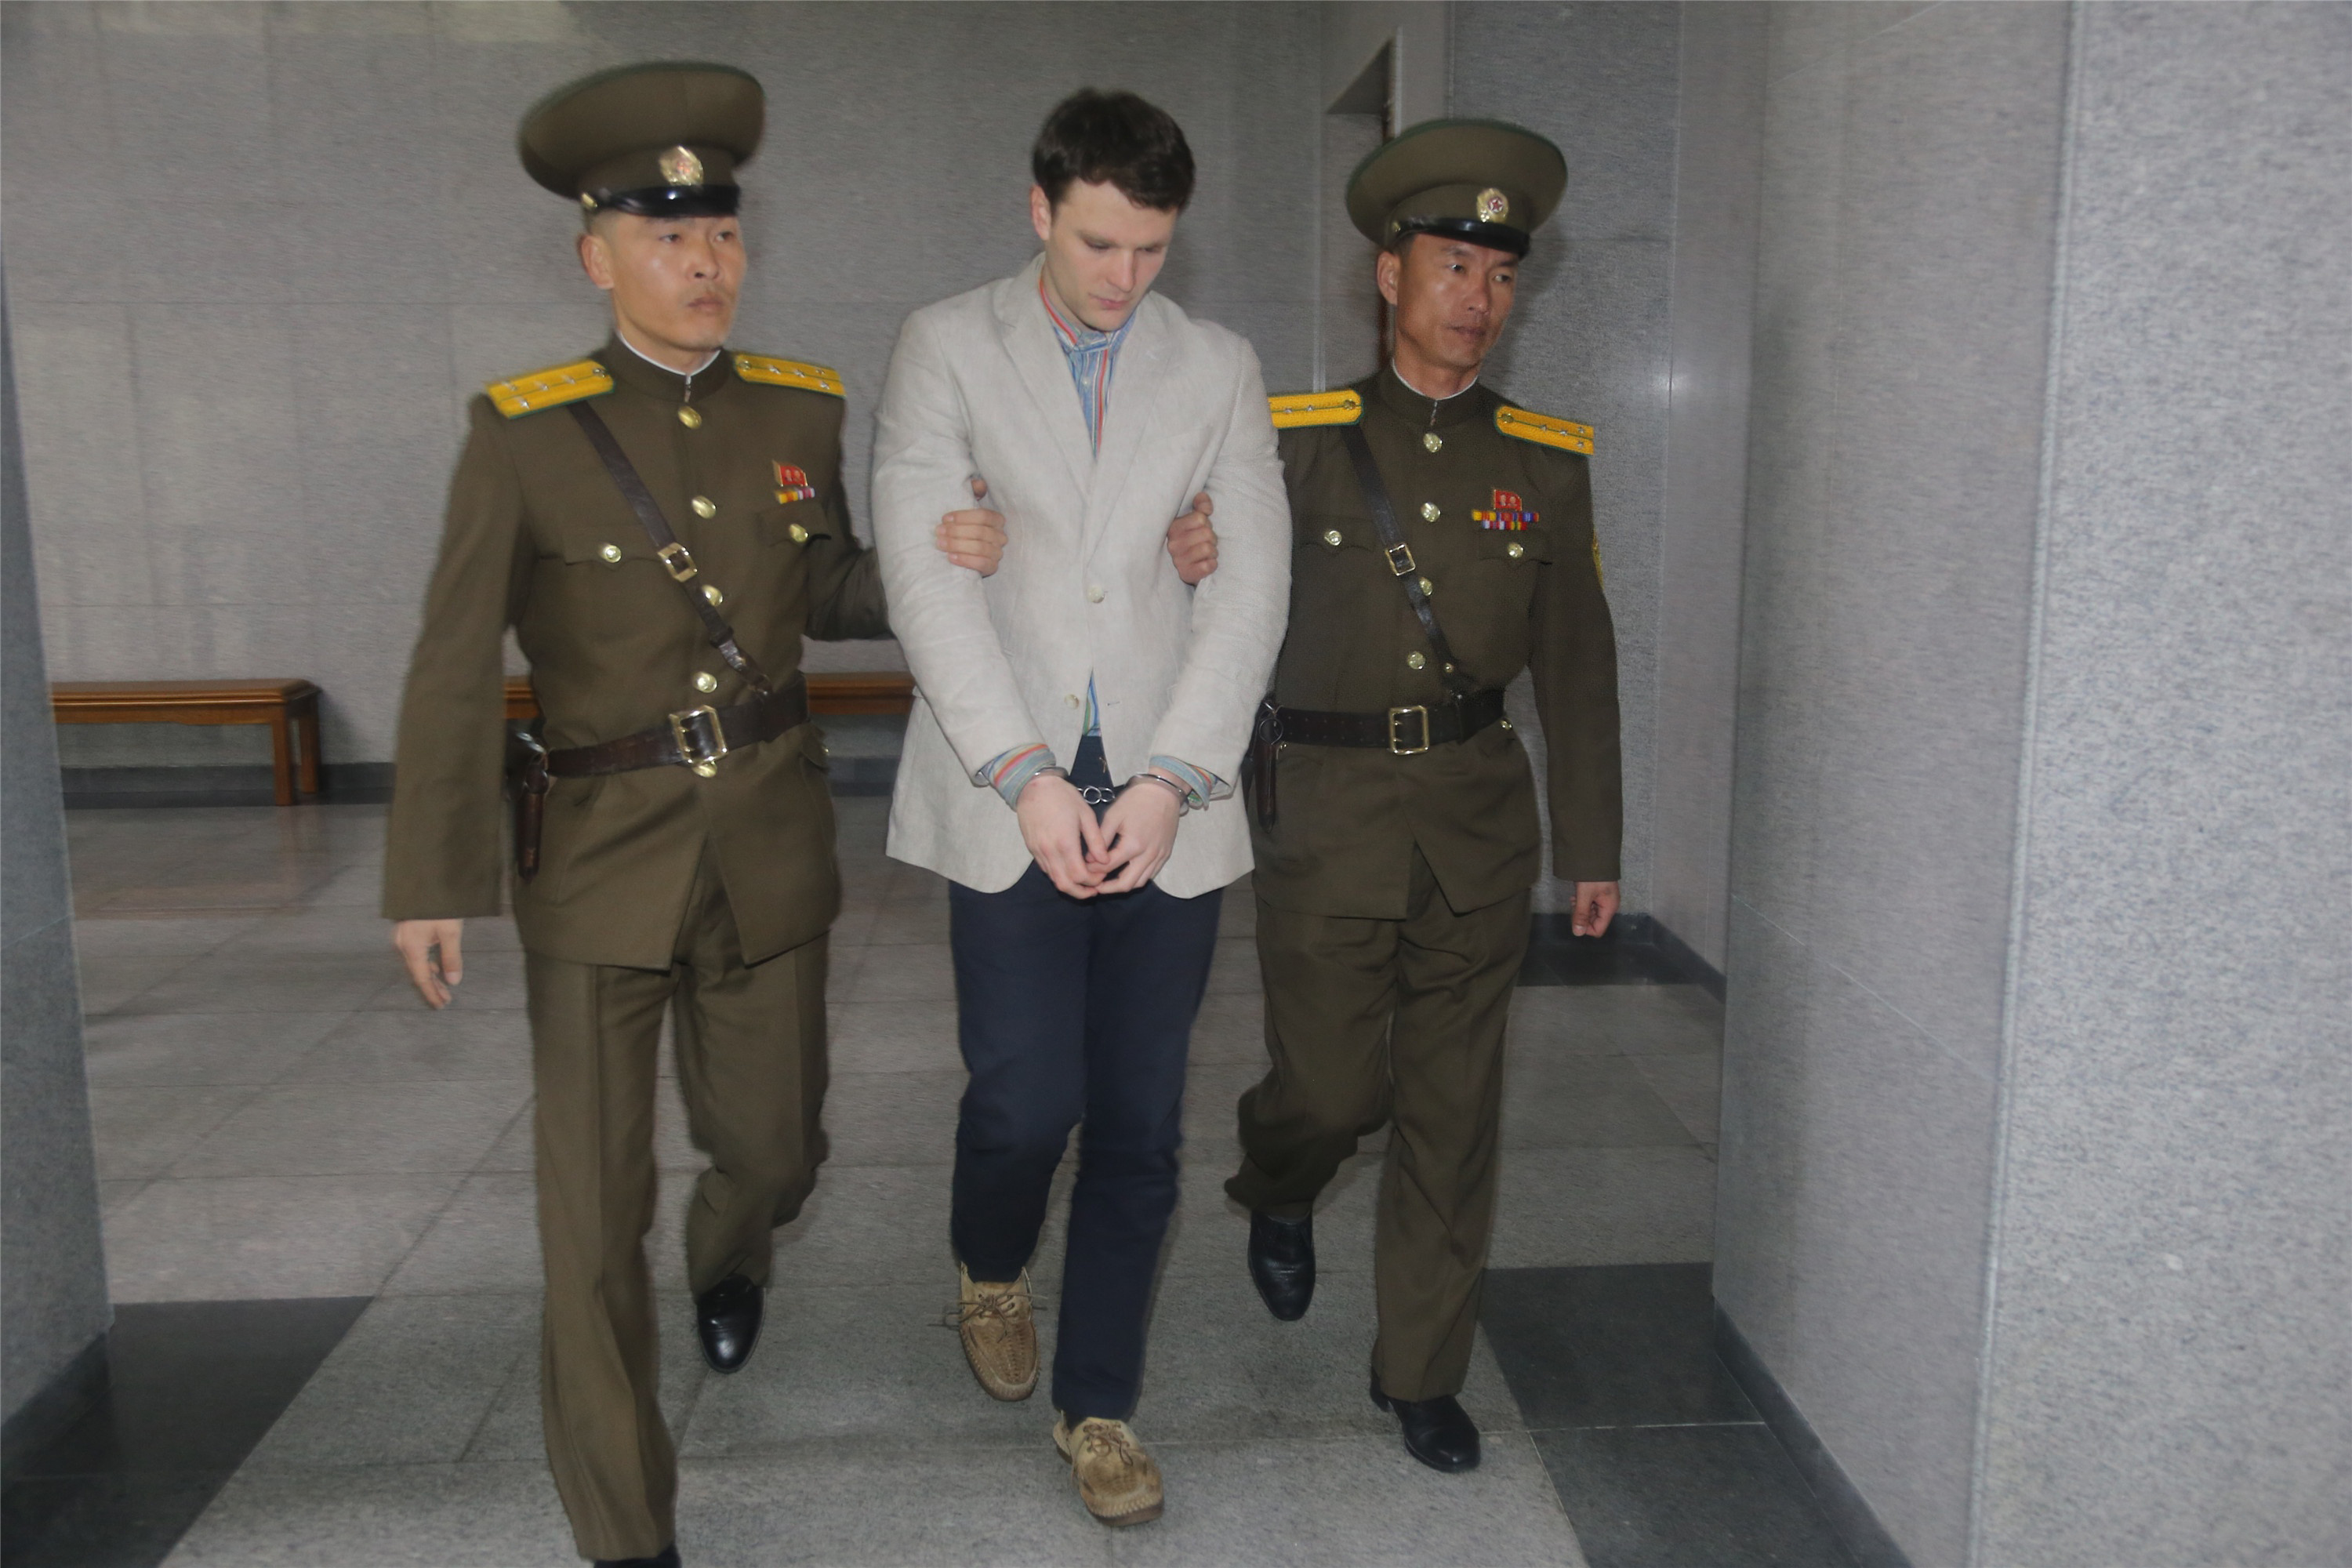 American student Otto Frederick Warmbier, center, arrives at a court for his trial in Pyongyang on March 16, 2016.